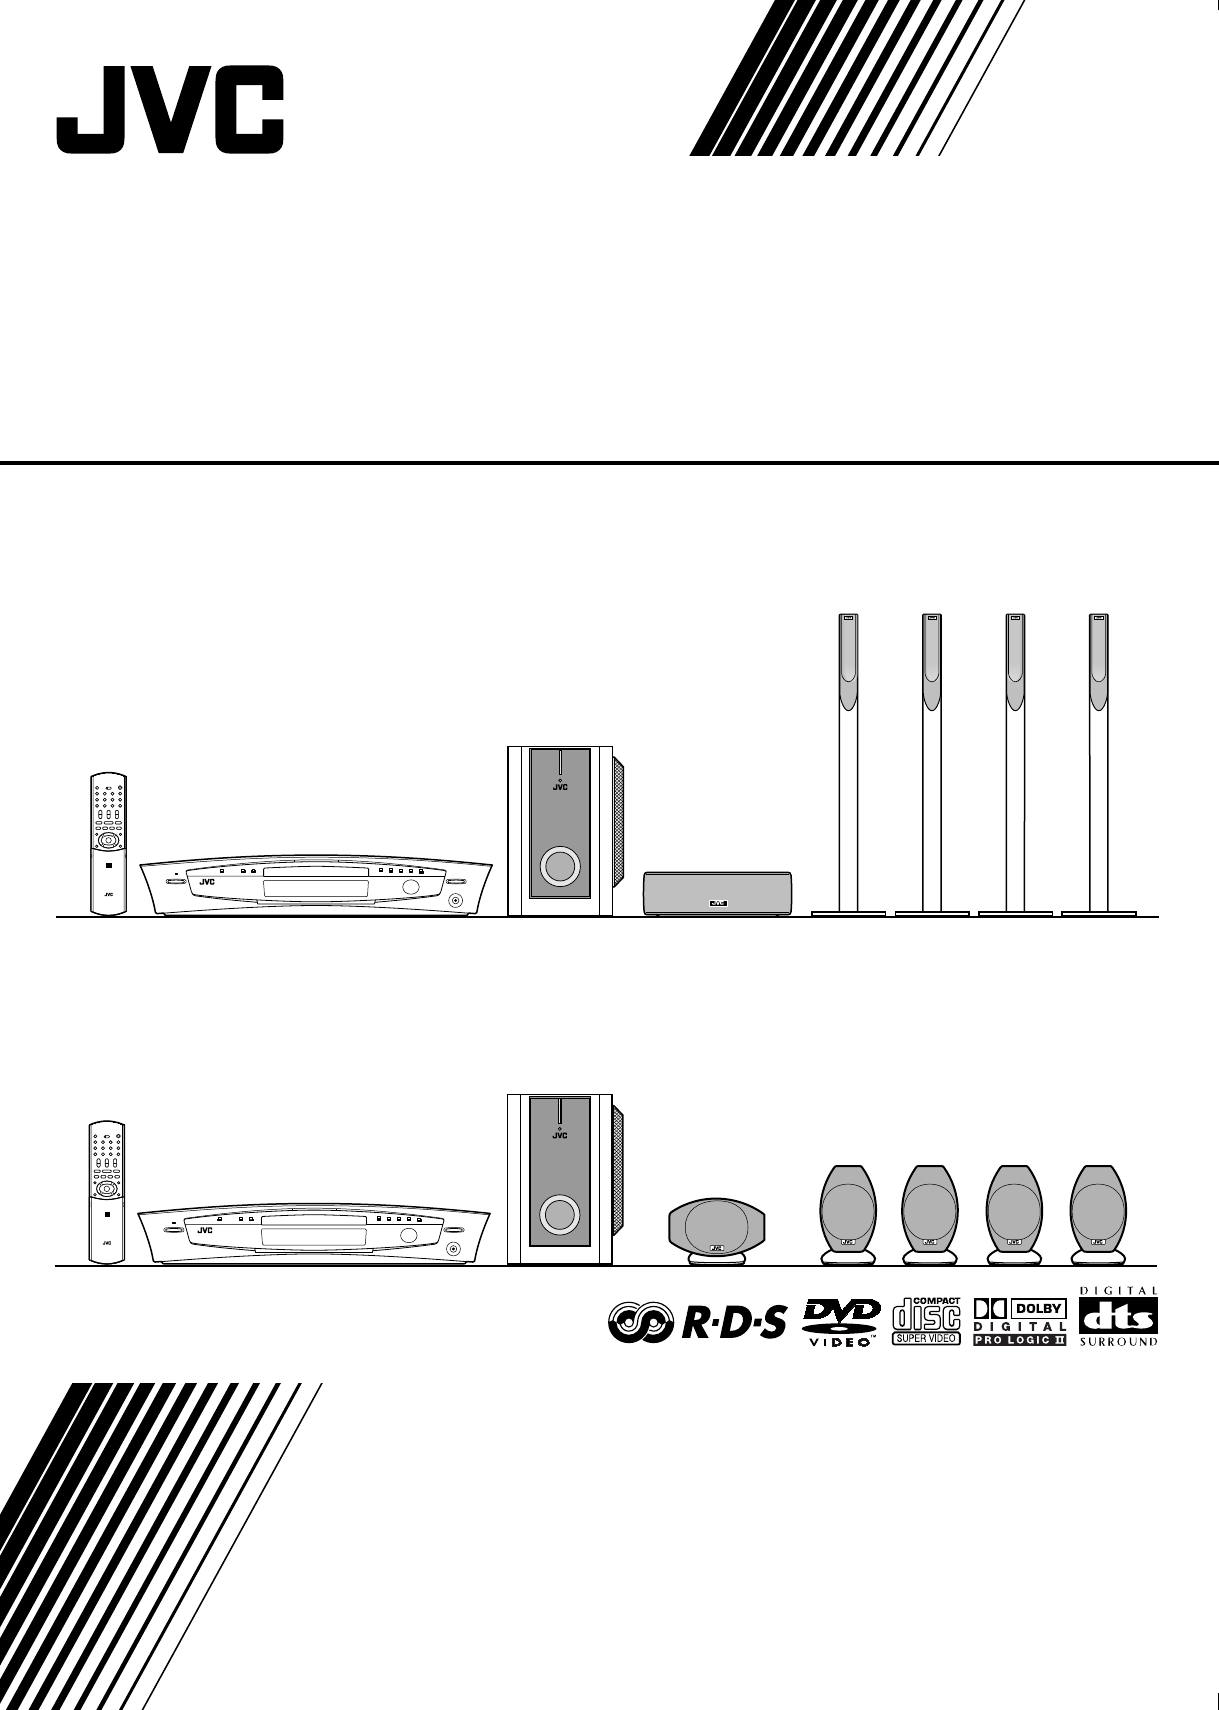 JVC Home Theater System XV-THA55 User Guide